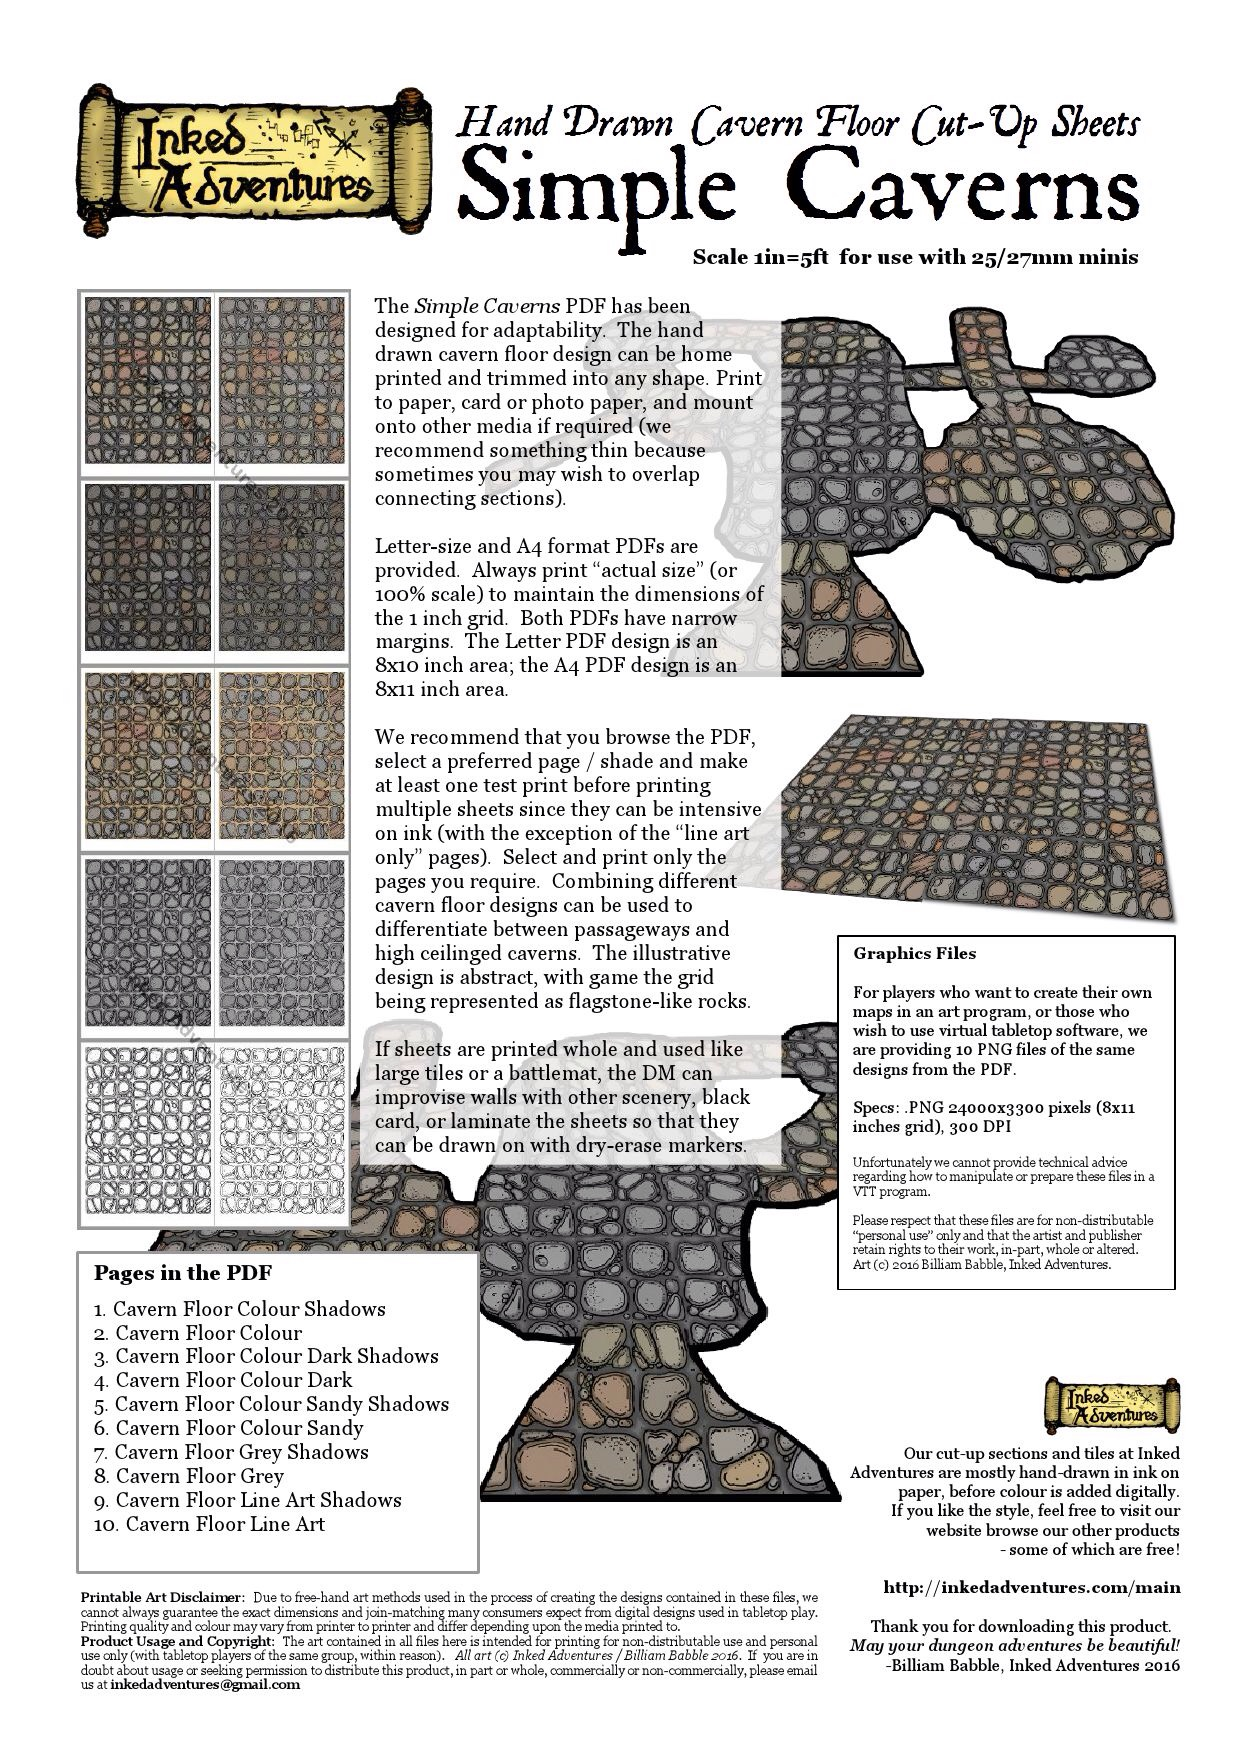 Introductory Graphic and Instructions for Simple Caverns Inked Adventures 2016